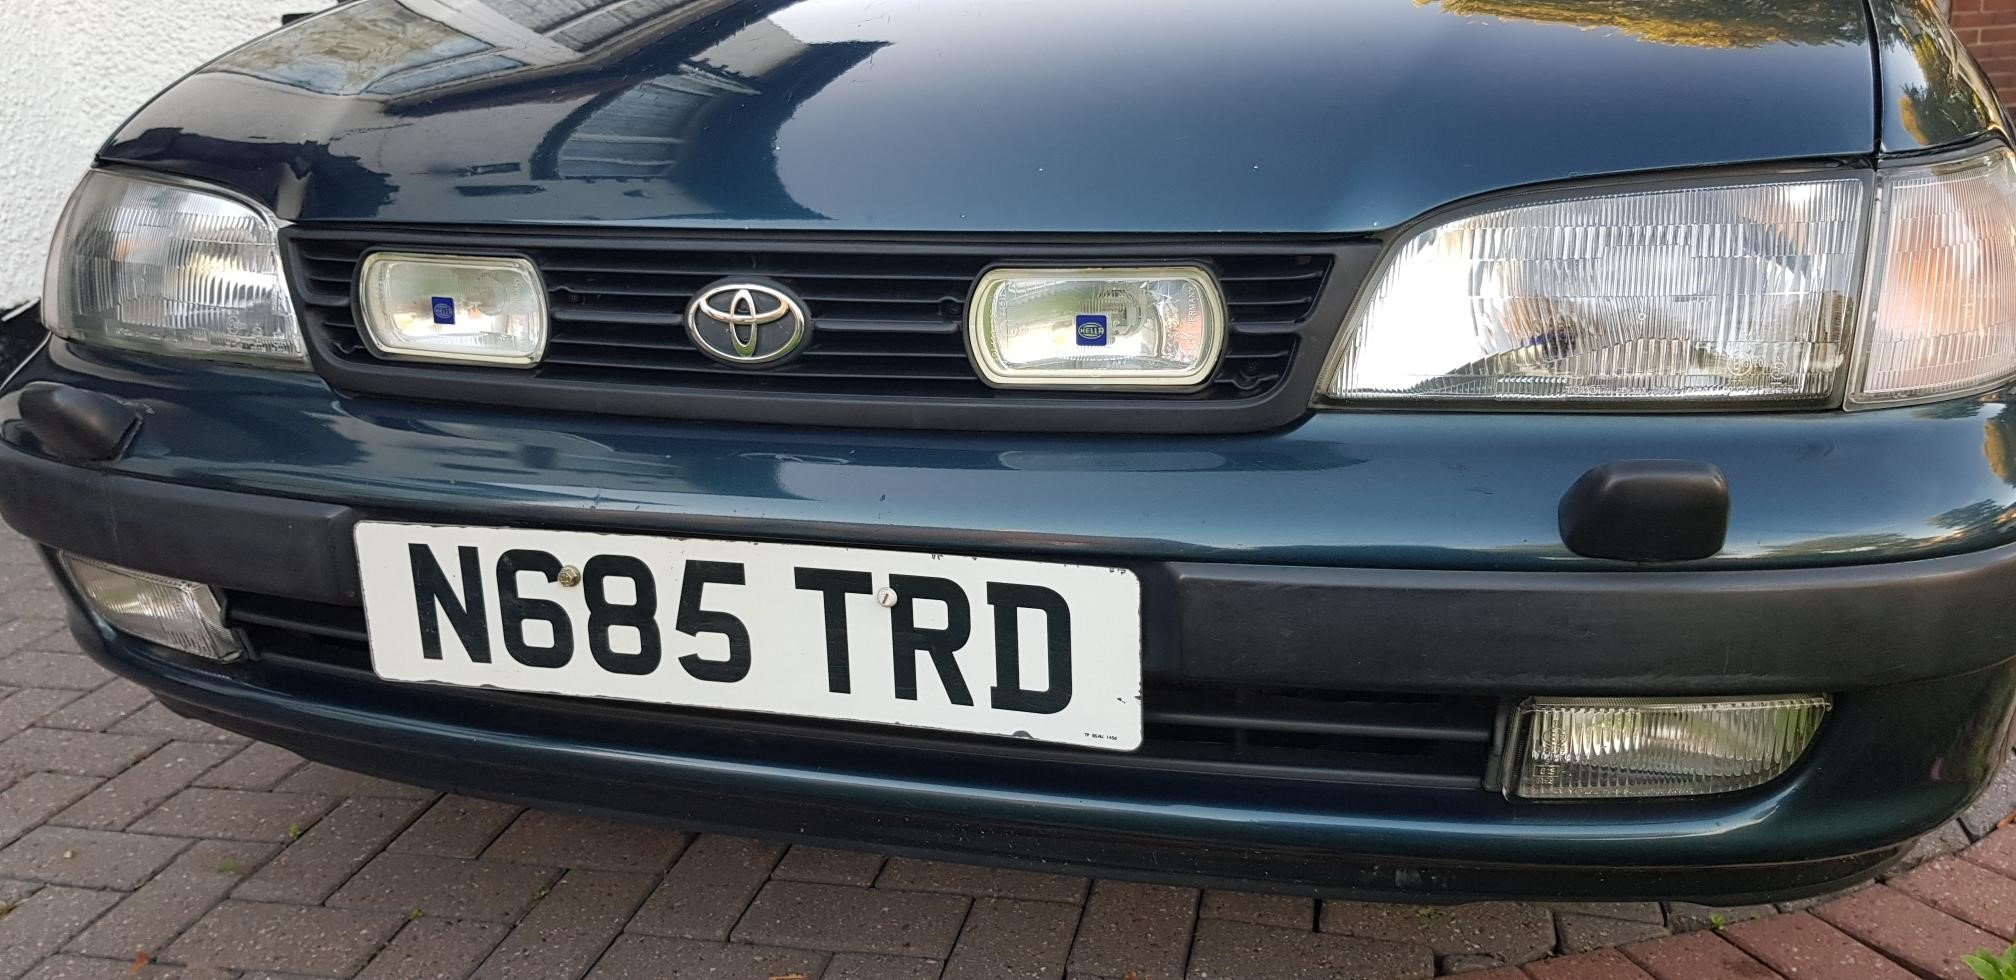 1995 Toyota Carina GTi For Sale (picture 2 of 6)